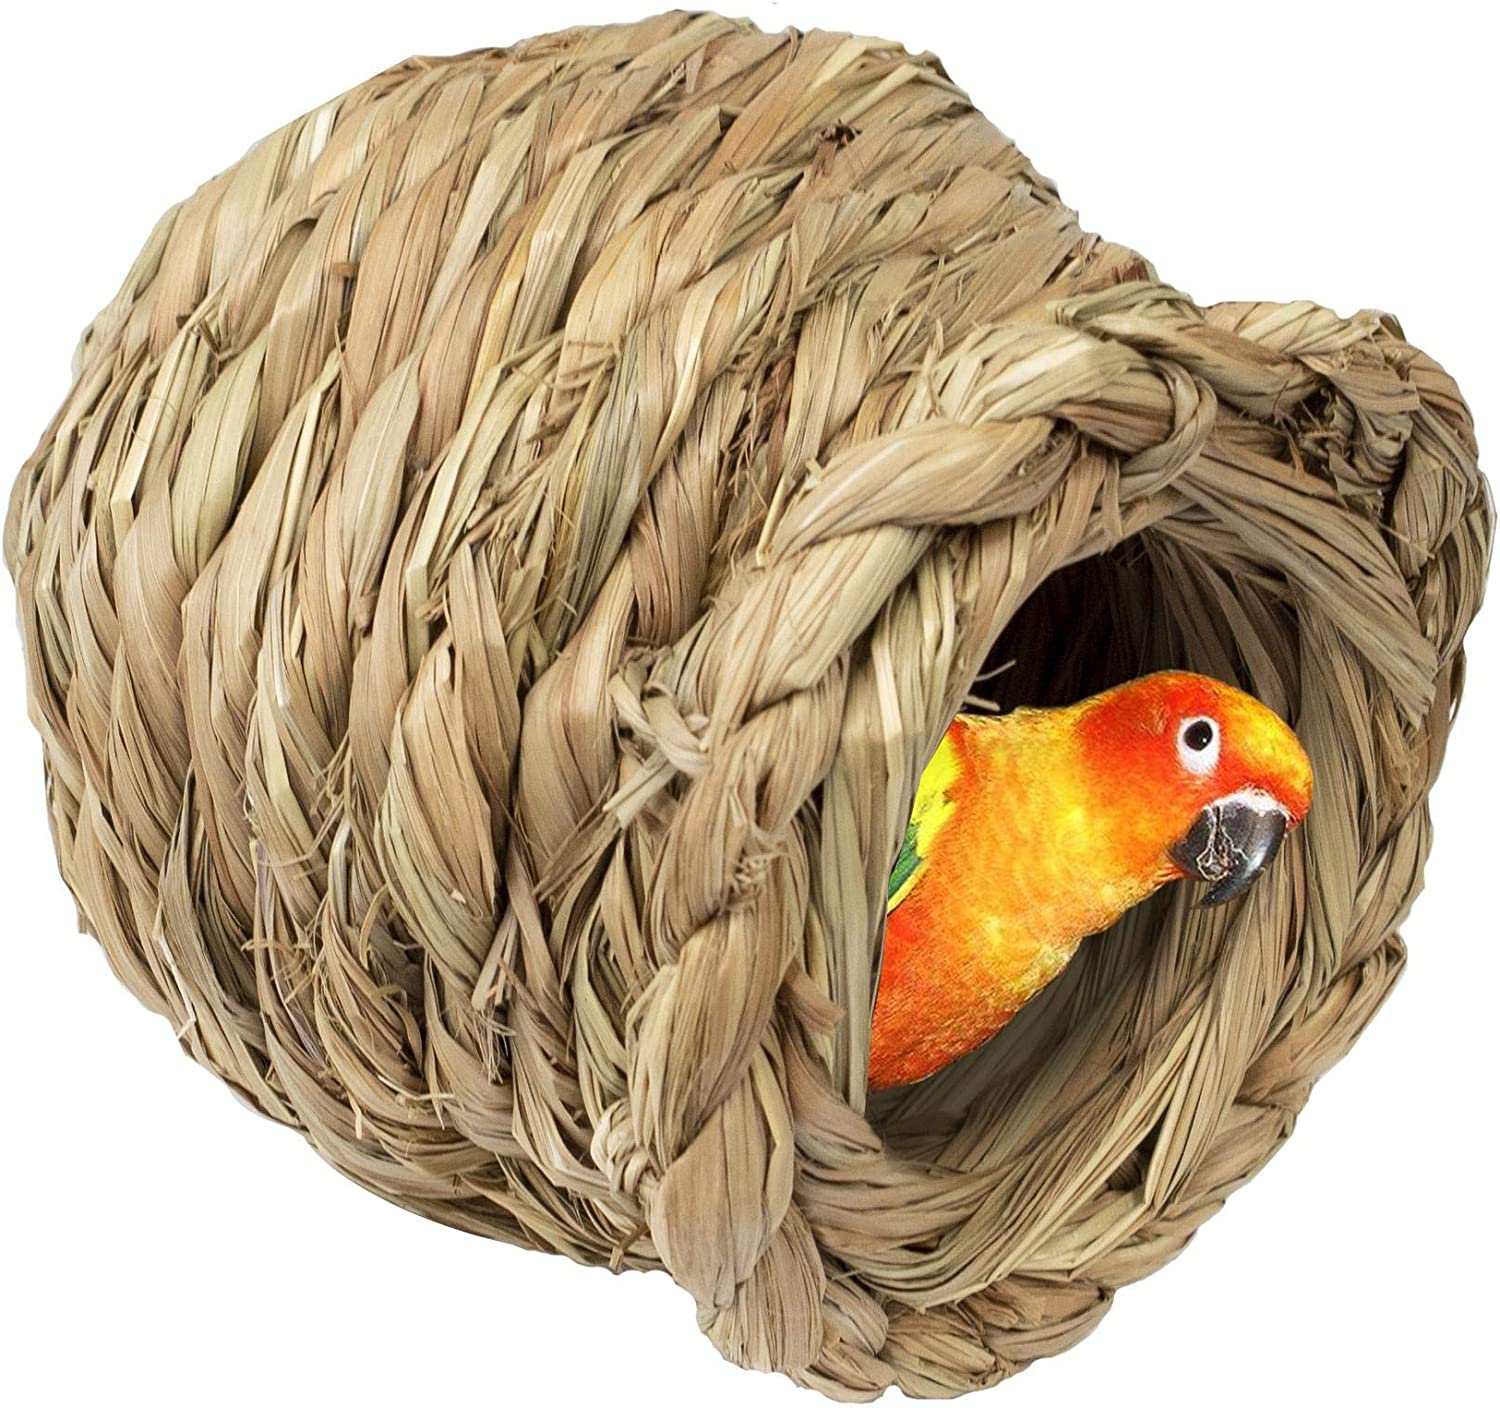 Woven Bird Nest Cage | Natural Grass Hideaway Bird Hut, Warm and Safe for All Kinds of Birds